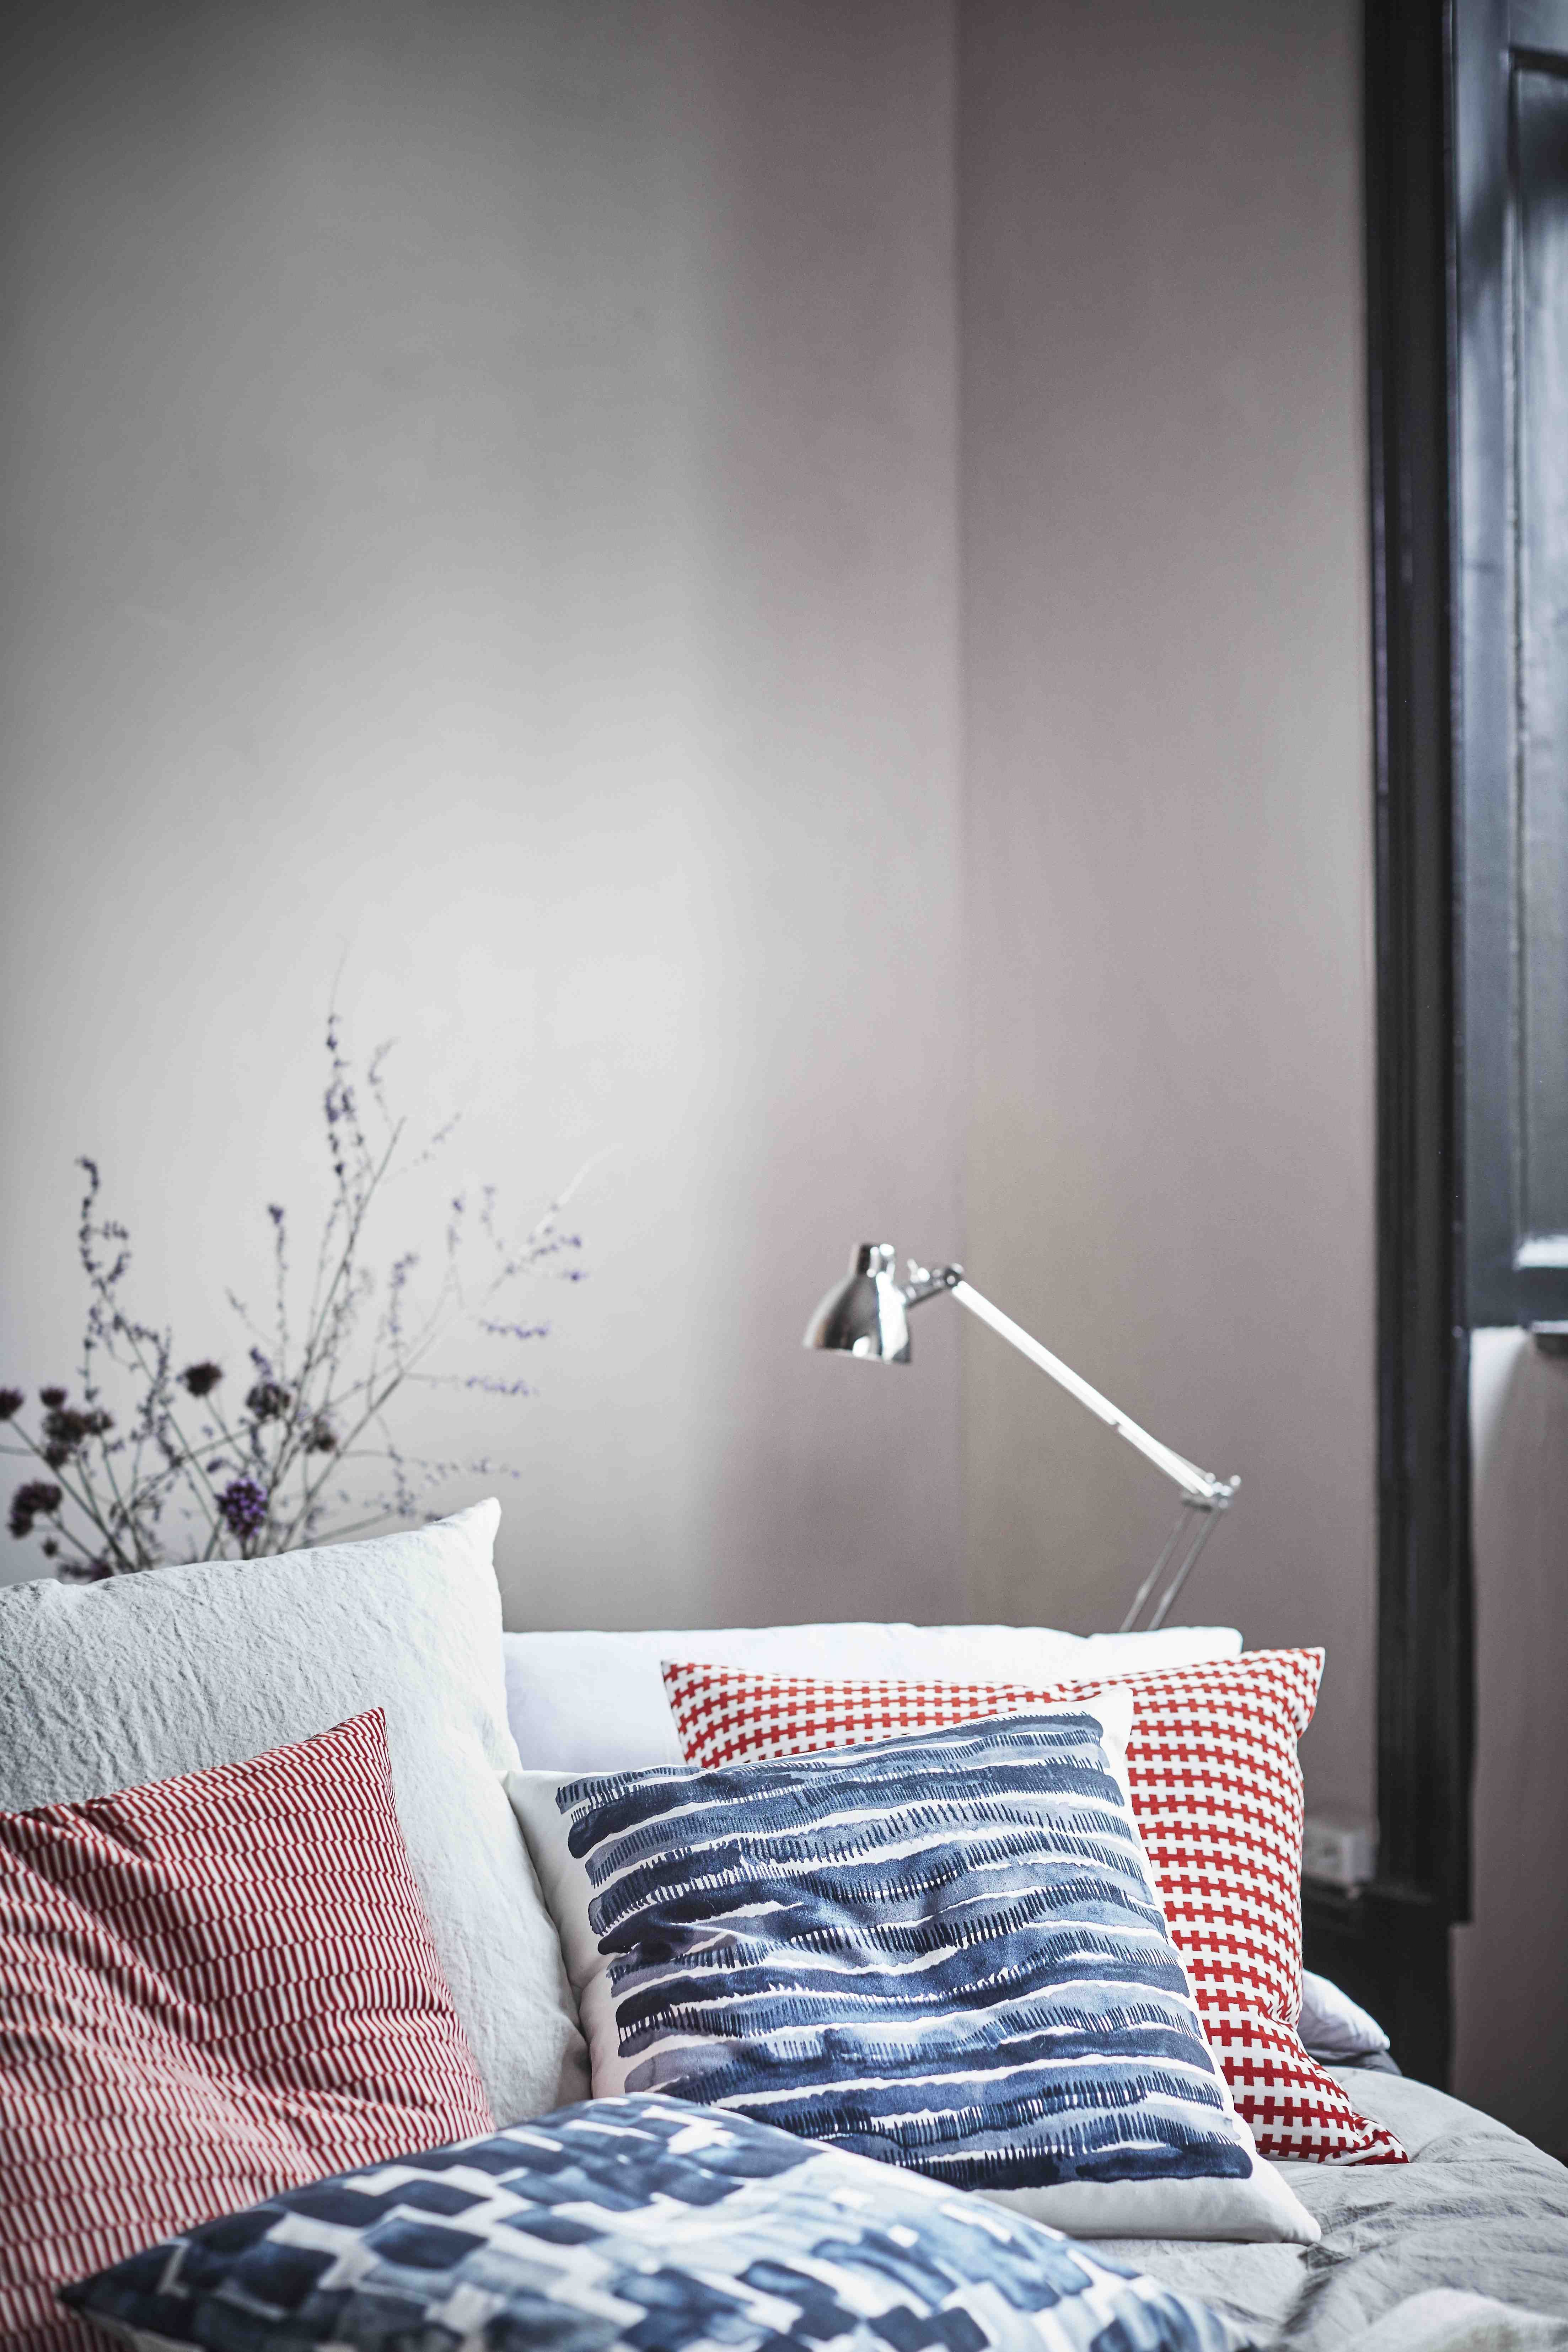 Ikeau0027s latest Stockholm collection is a curated